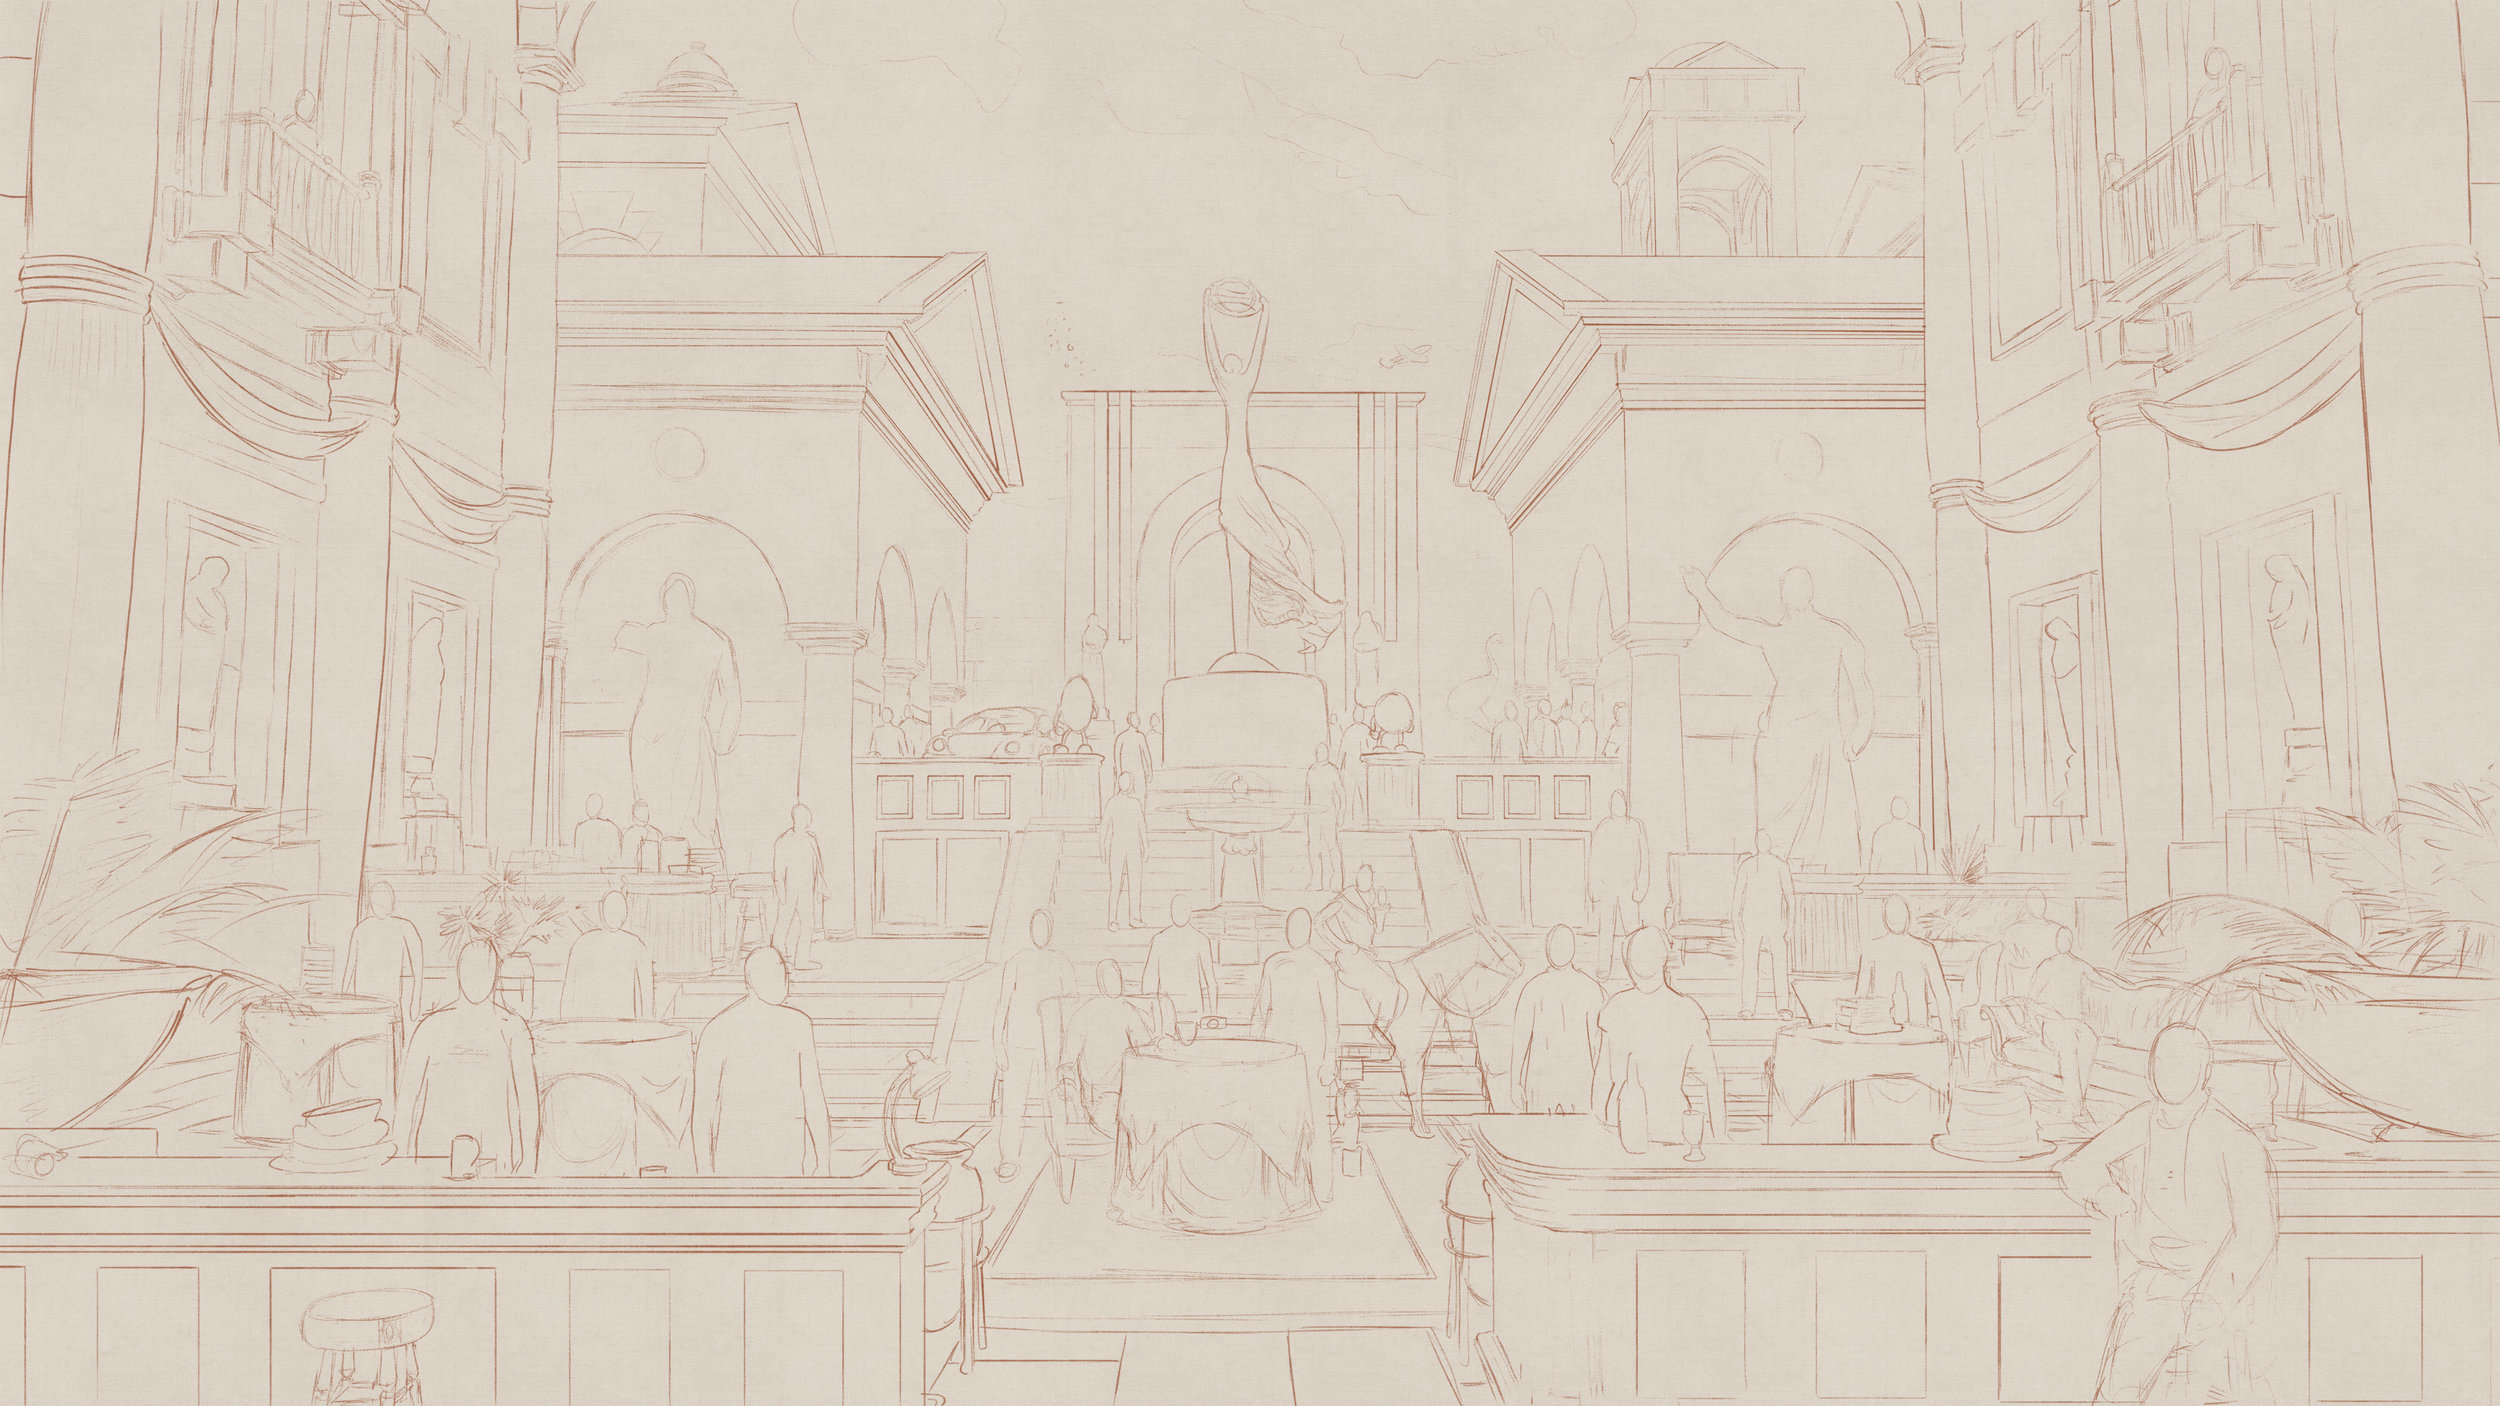 Clios_Painting_Stages_0002_3.jpg